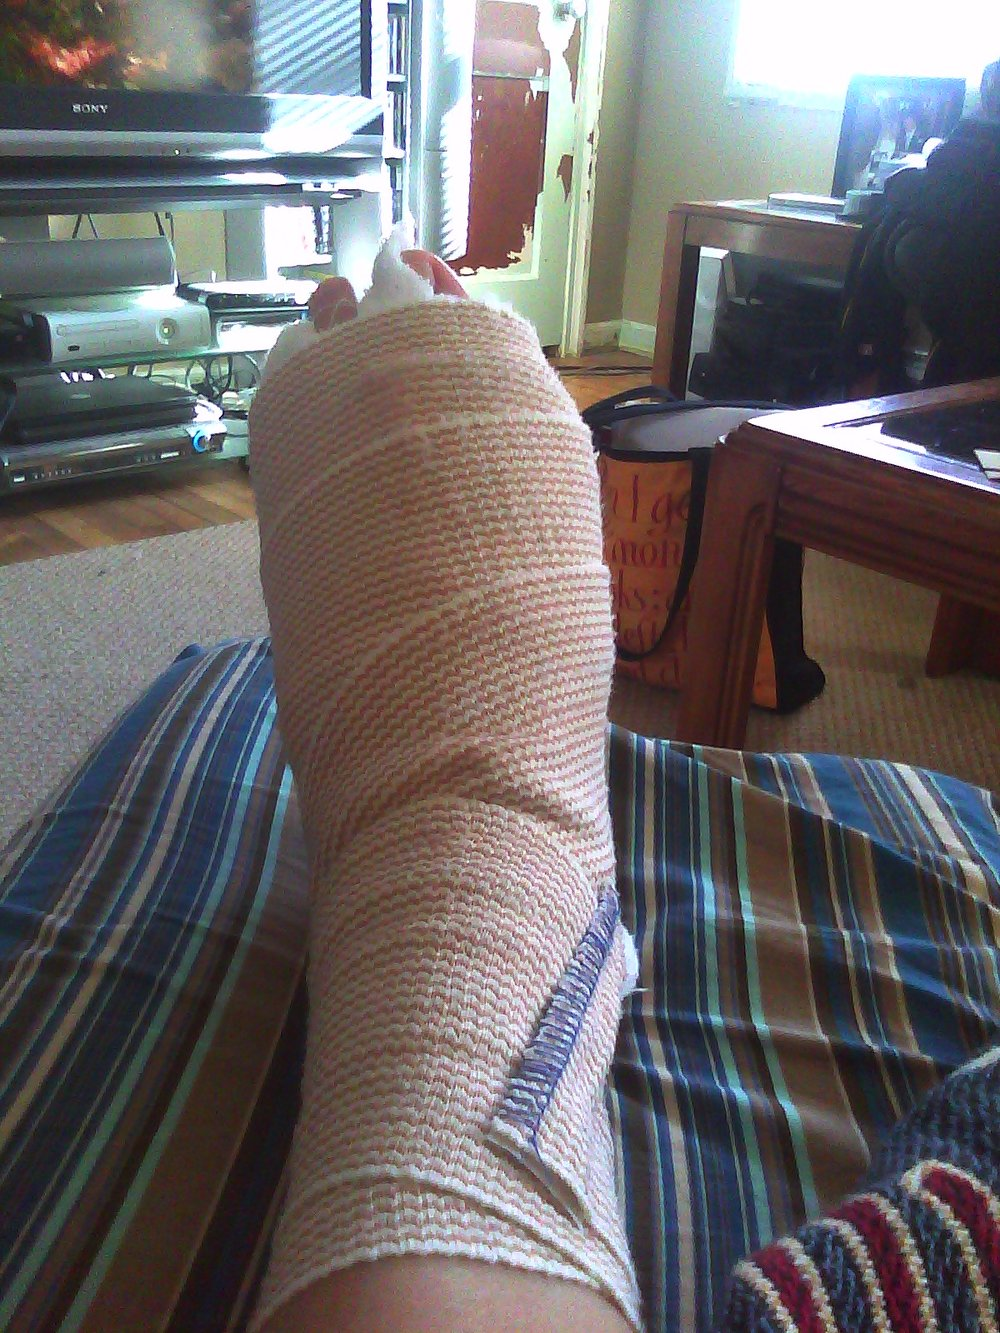 The post surgery foot